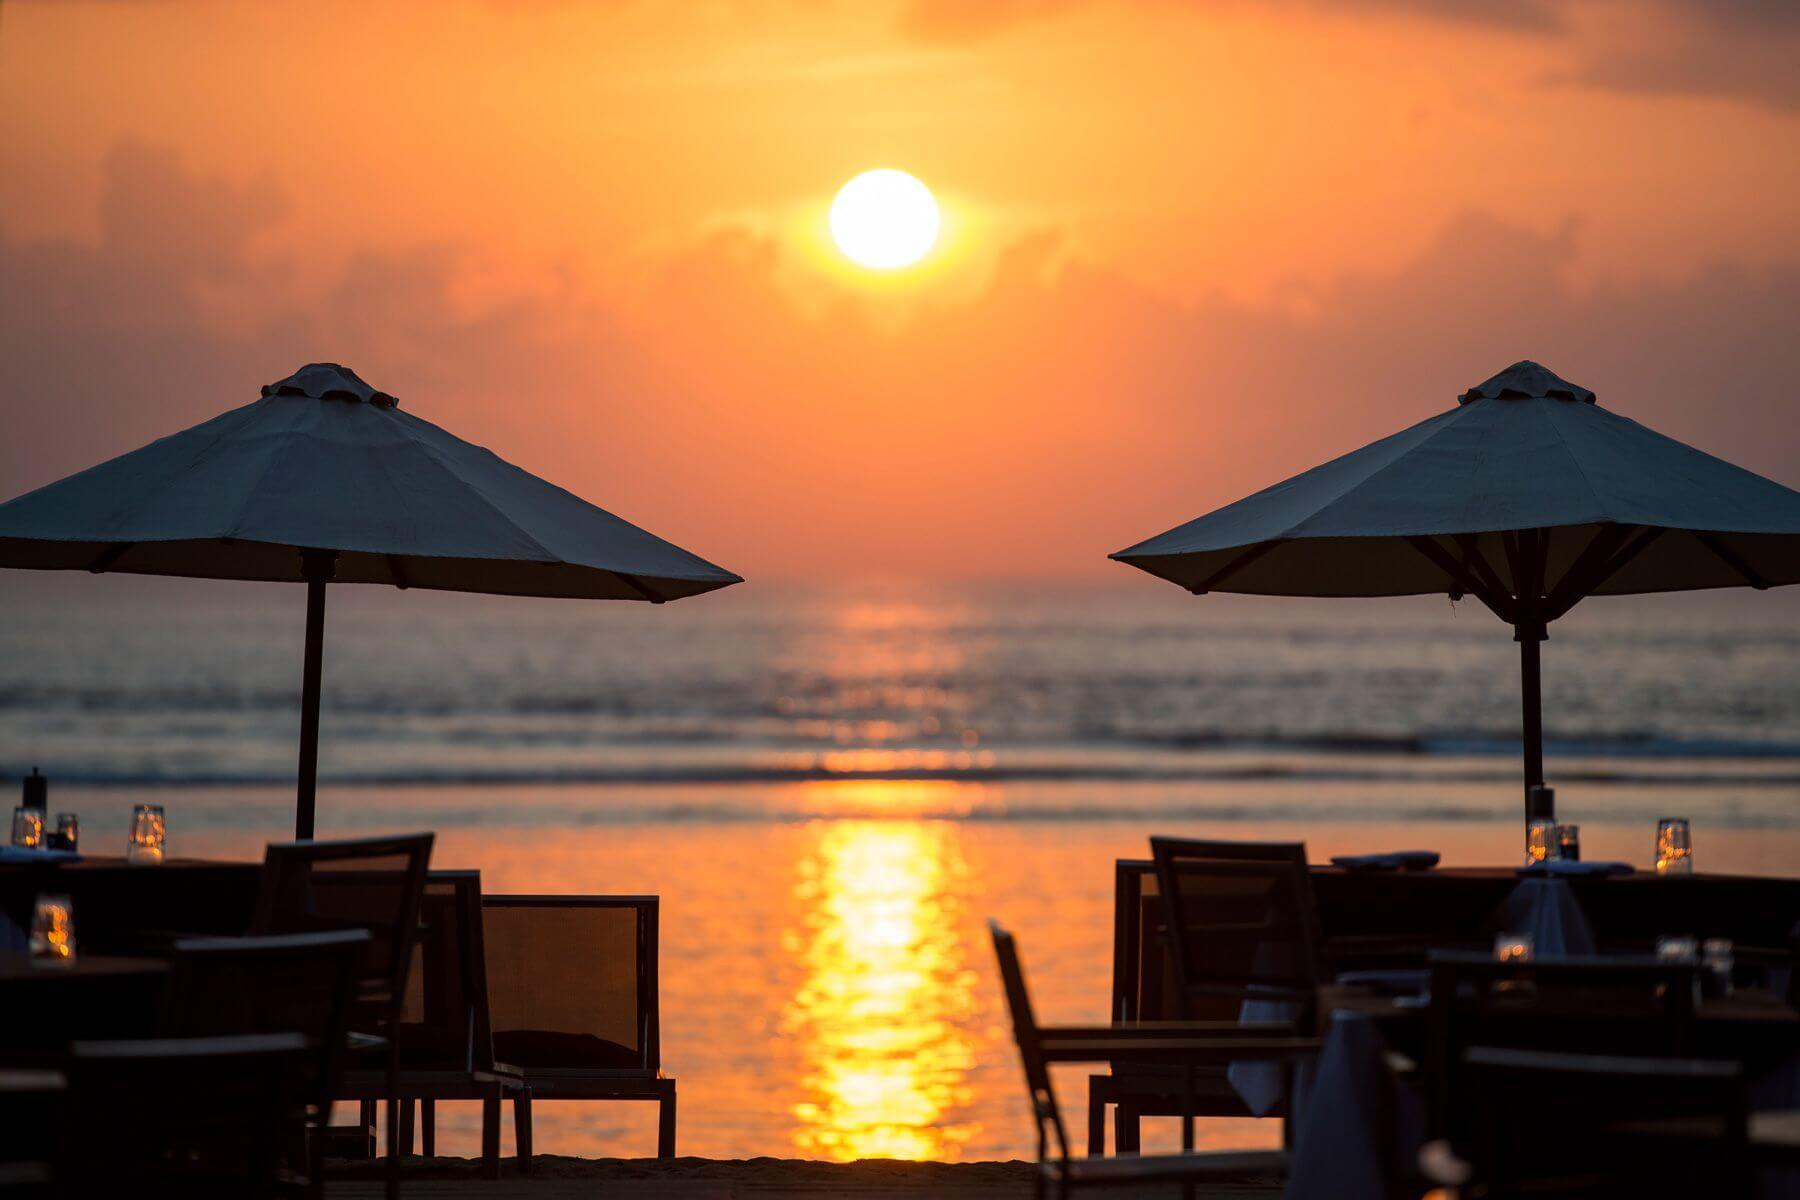 sunrise in sanur - sanur activities